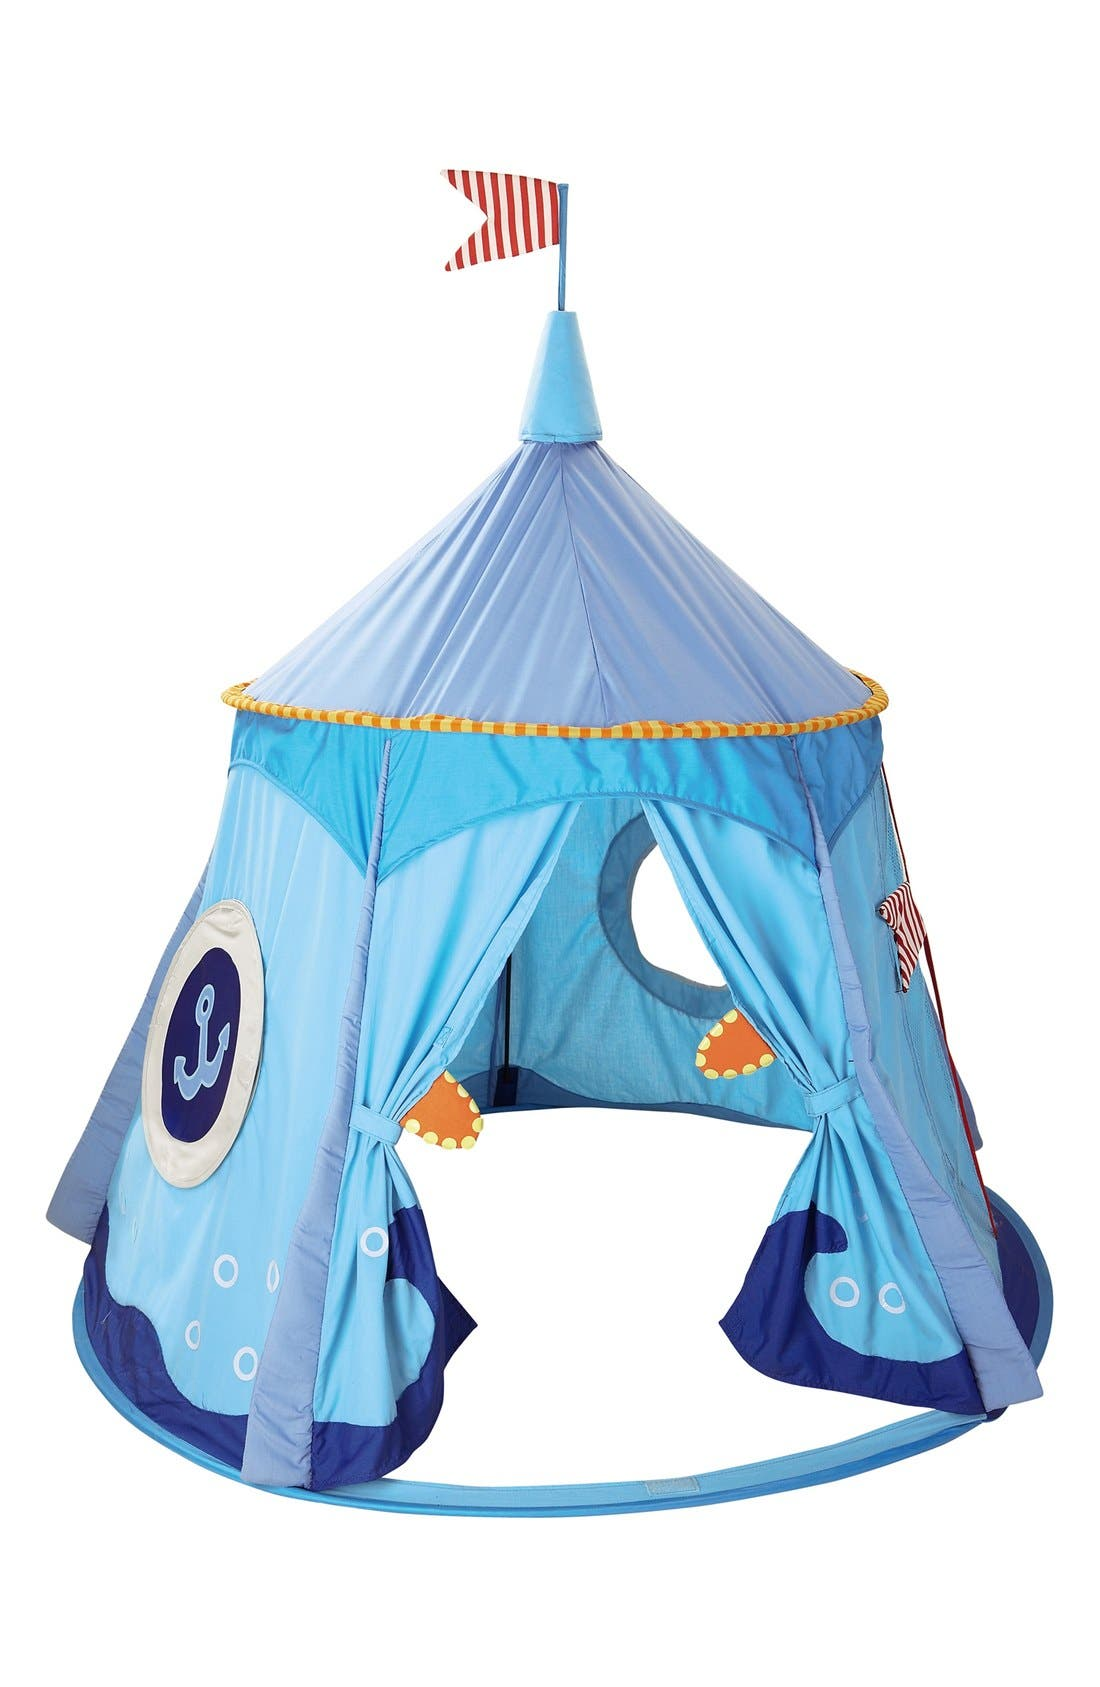 'Pirate's Treasure' Play Tent,                             Main thumbnail 1, color,                             BLUE